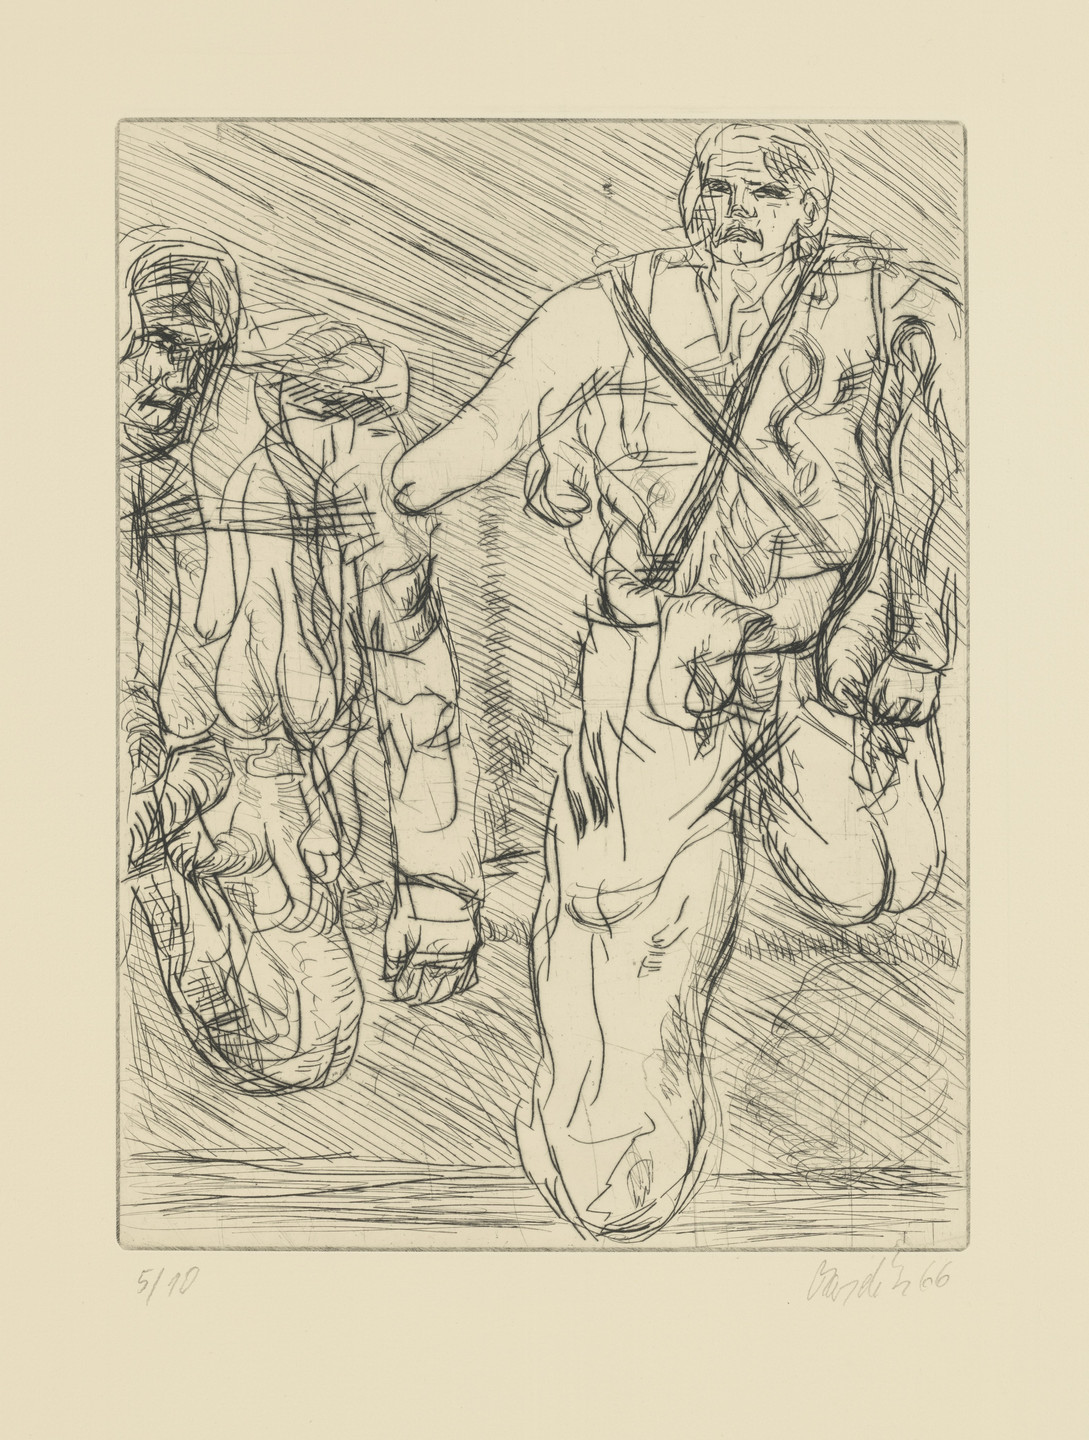 Georg Baselitz. Two Soldiers (Zwei Soldaten). 1966–67, published 1974